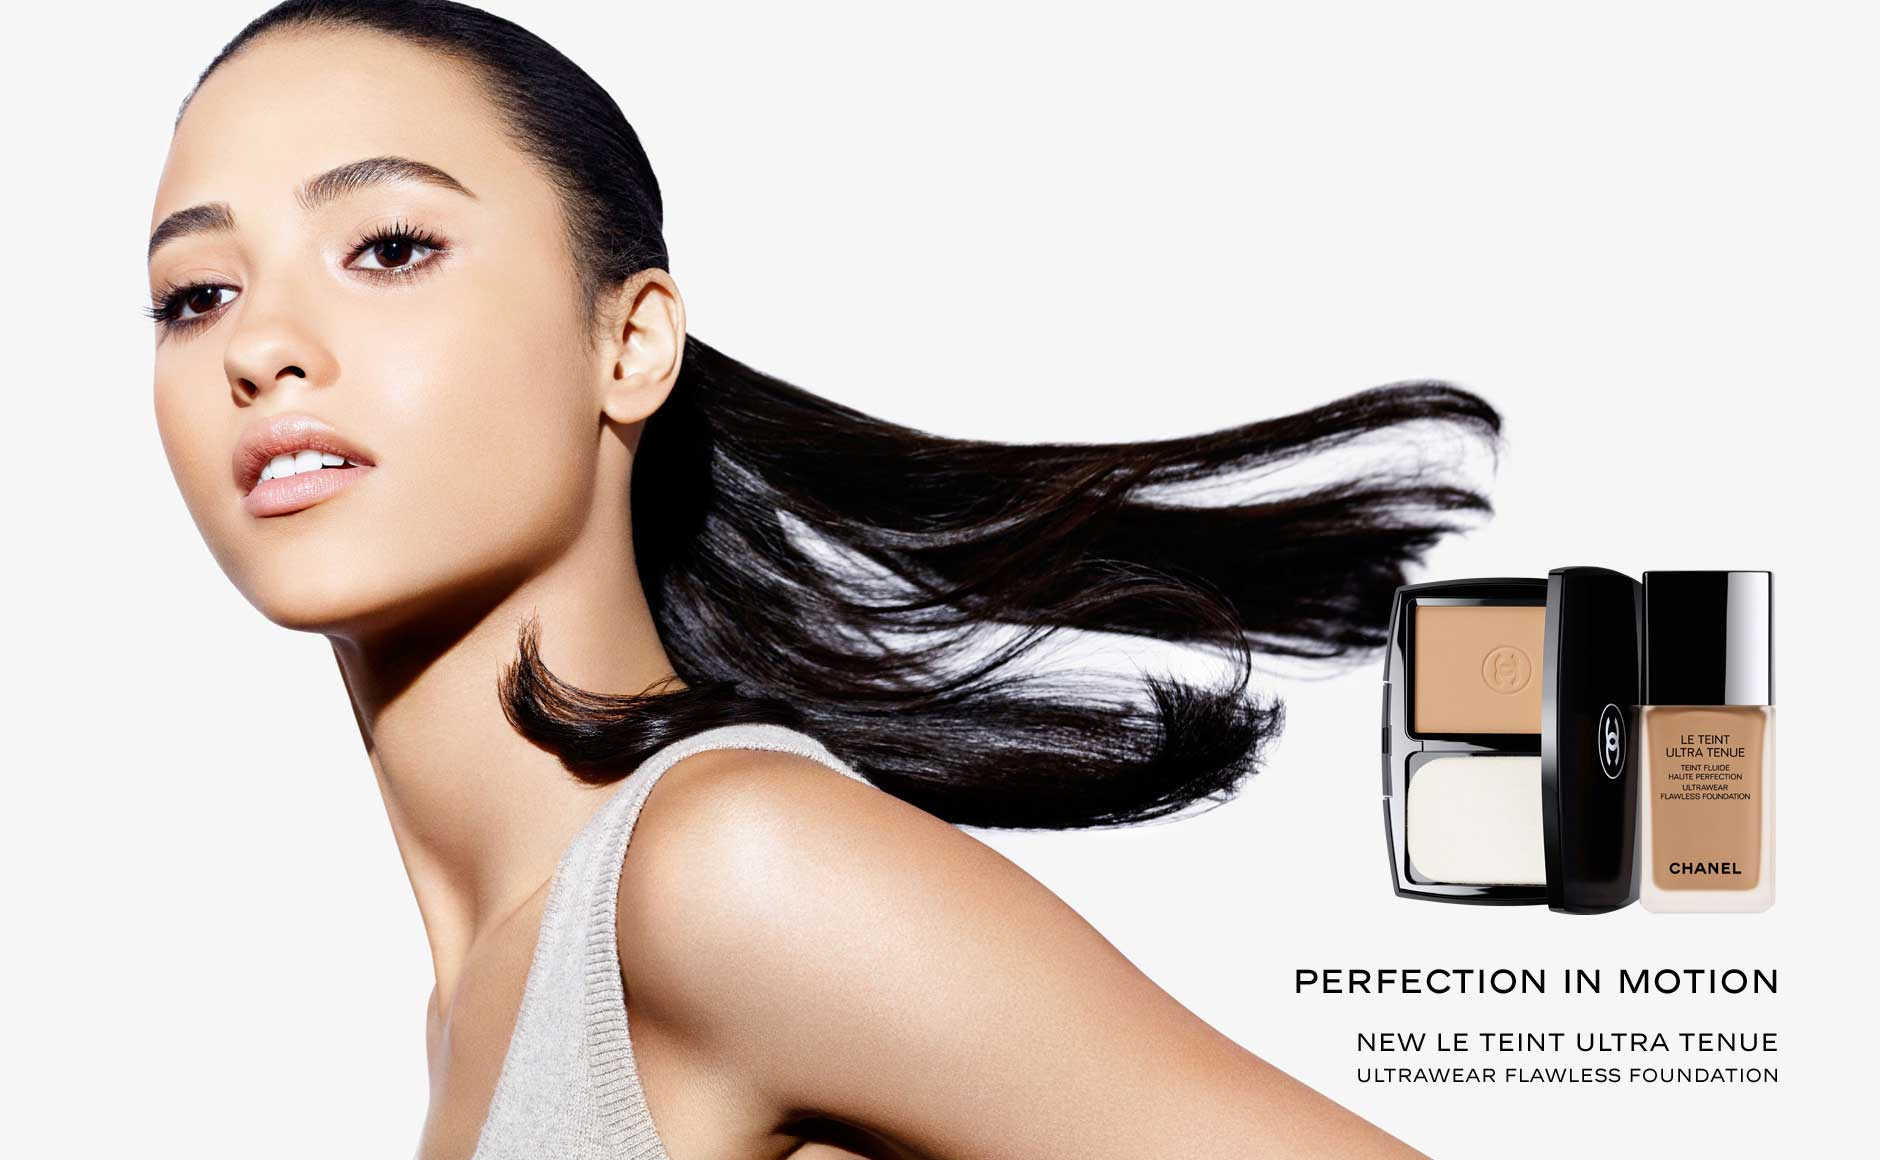 Perfection in Motion: New Le Teint Ultra Tenue - Ultrawear Flawless Foundation